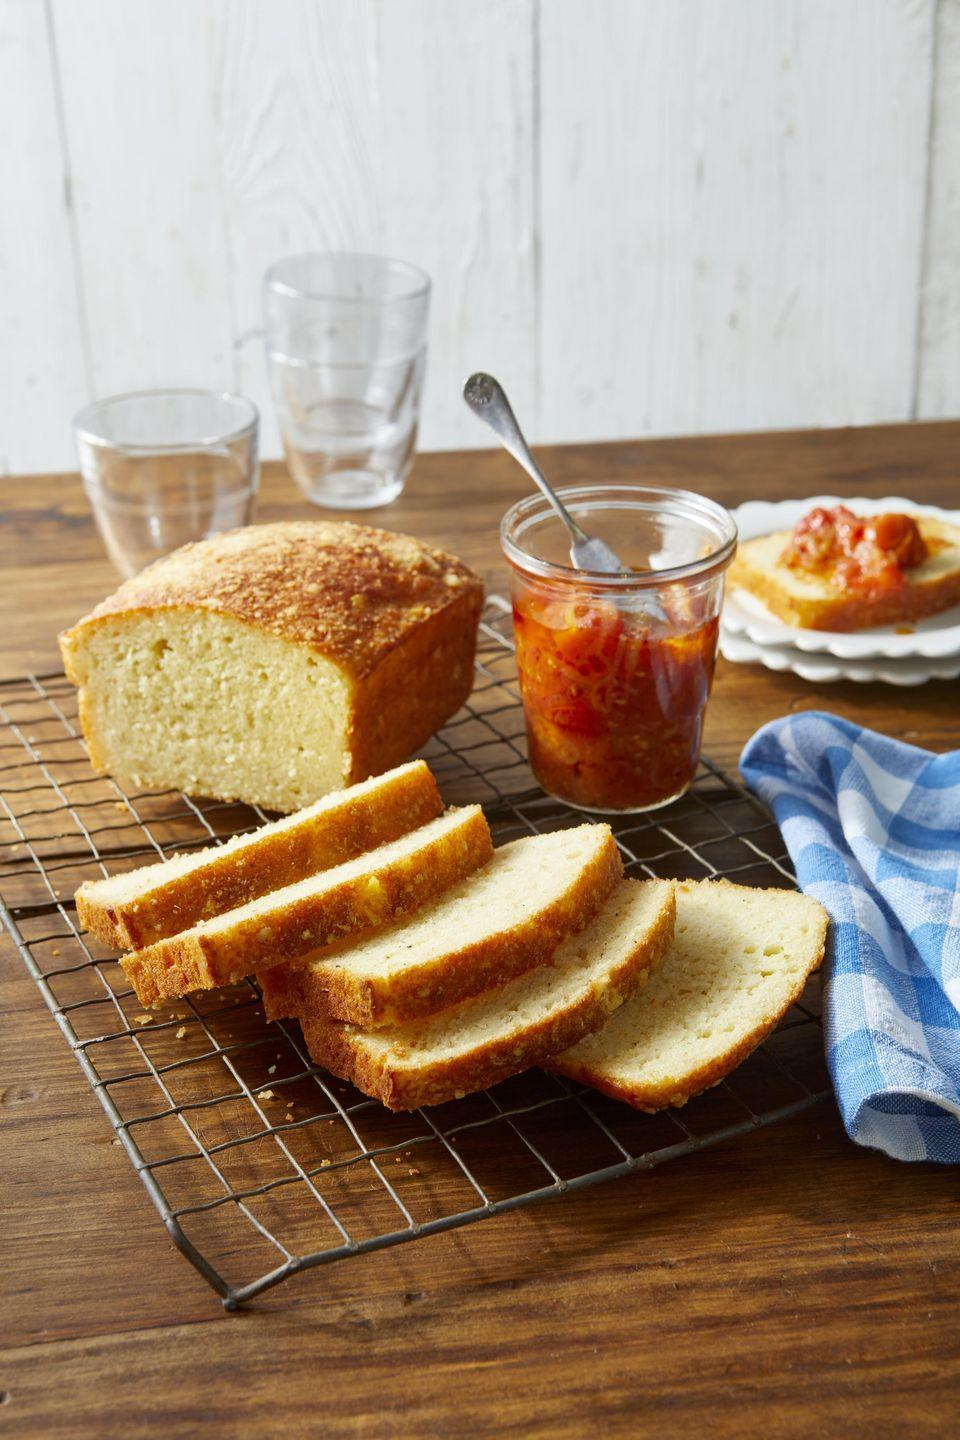 """<p>For an extra treat, try this savory bread topped with a bit of spicy <a href=""""https://www.countryliving.com/food-drinks/recipes/a1652/tomato-jam-3768/"""" rel=""""nofollow noopener"""" target=""""_blank"""" data-ylk=""""slk:tomato jam"""" class=""""link rapid-noclick-resp"""">tomato jam</a>.</p><p><strong><a href=""""https://www.countryliving.com/food-drinks/a34946658/parmesan-and-garlic-quick-bread-recipe/"""" rel=""""nofollow noopener"""" target=""""_blank"""" data-ylk=""""slk:Get the recipe"""" class=""""link rapid-noclick-resp"""">Get the recipe</a>.</strong></p><p><a class=""""link rapid-noclick-resp"""" href=""""https://www.amazon.com/USA-Pan-1140LF-Bakeware-Aluminized/dp/B0029JQEIC/?tag=syn-yahoo-20&ascsubtag=%5Bartid%7C10050.g.35246097%5Bsrc%7Cyahoo-us"""" rel=""""nofollow noopener"""" target=""""_blank"""" data-ylk=""""slk:SHOP LOAF PANS"""">SHOP LOAF PANS</a><br></p>"""